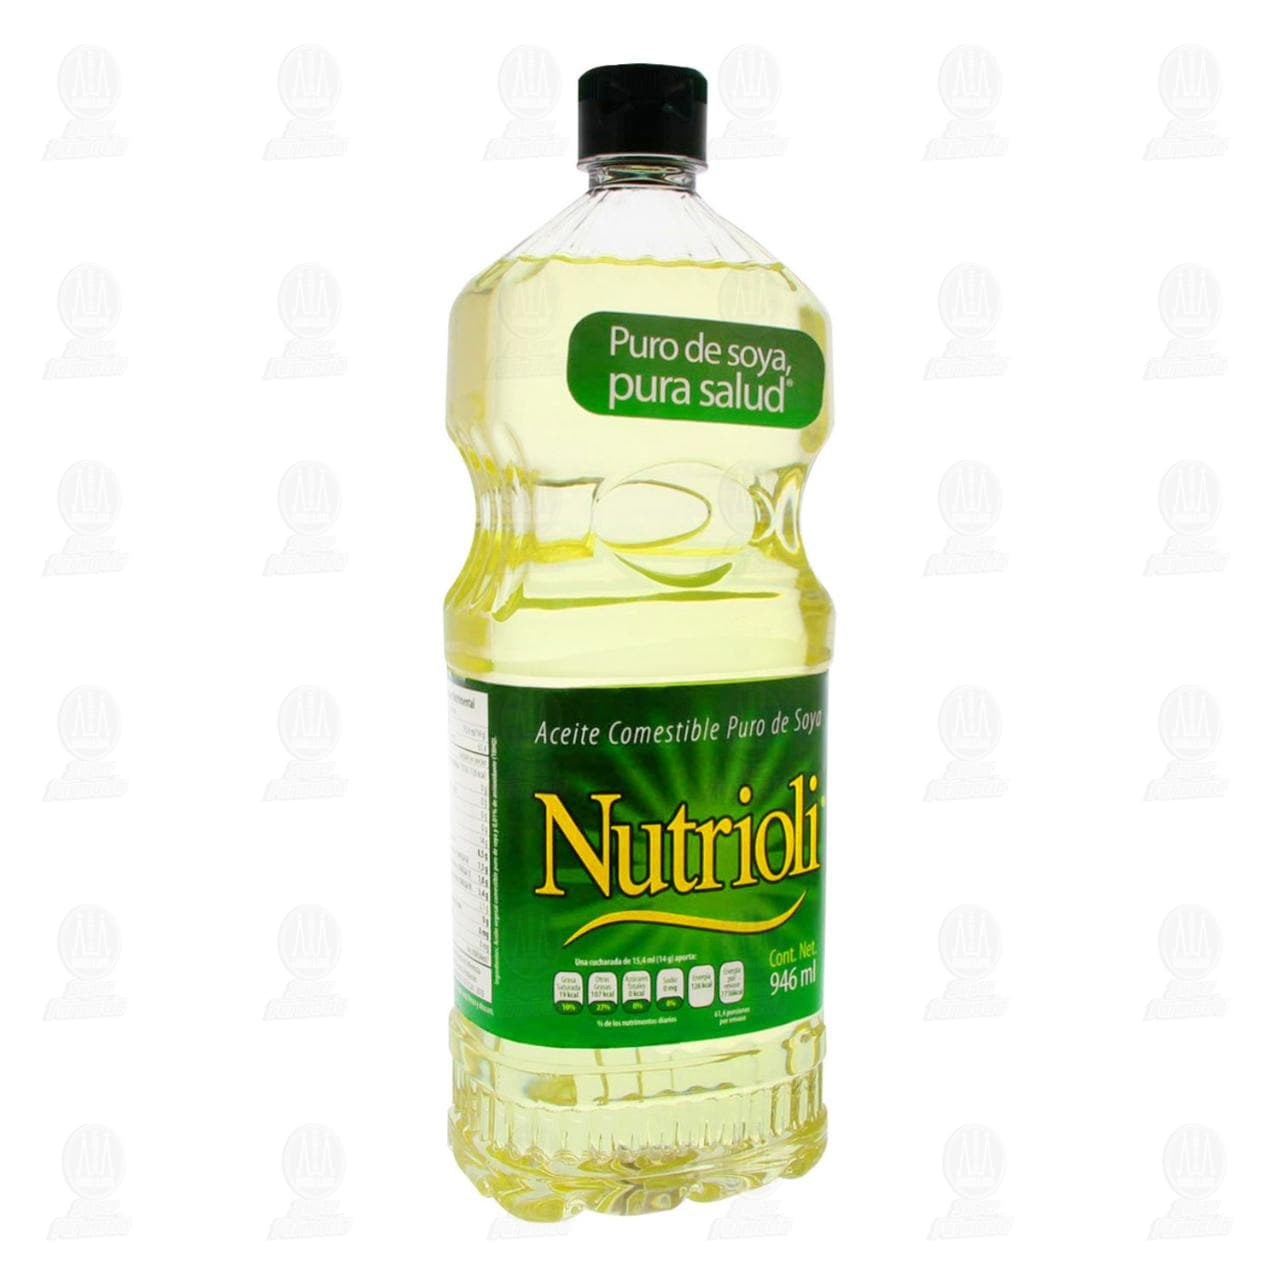 Aceite Nutrioli de Soya, 946 ml.